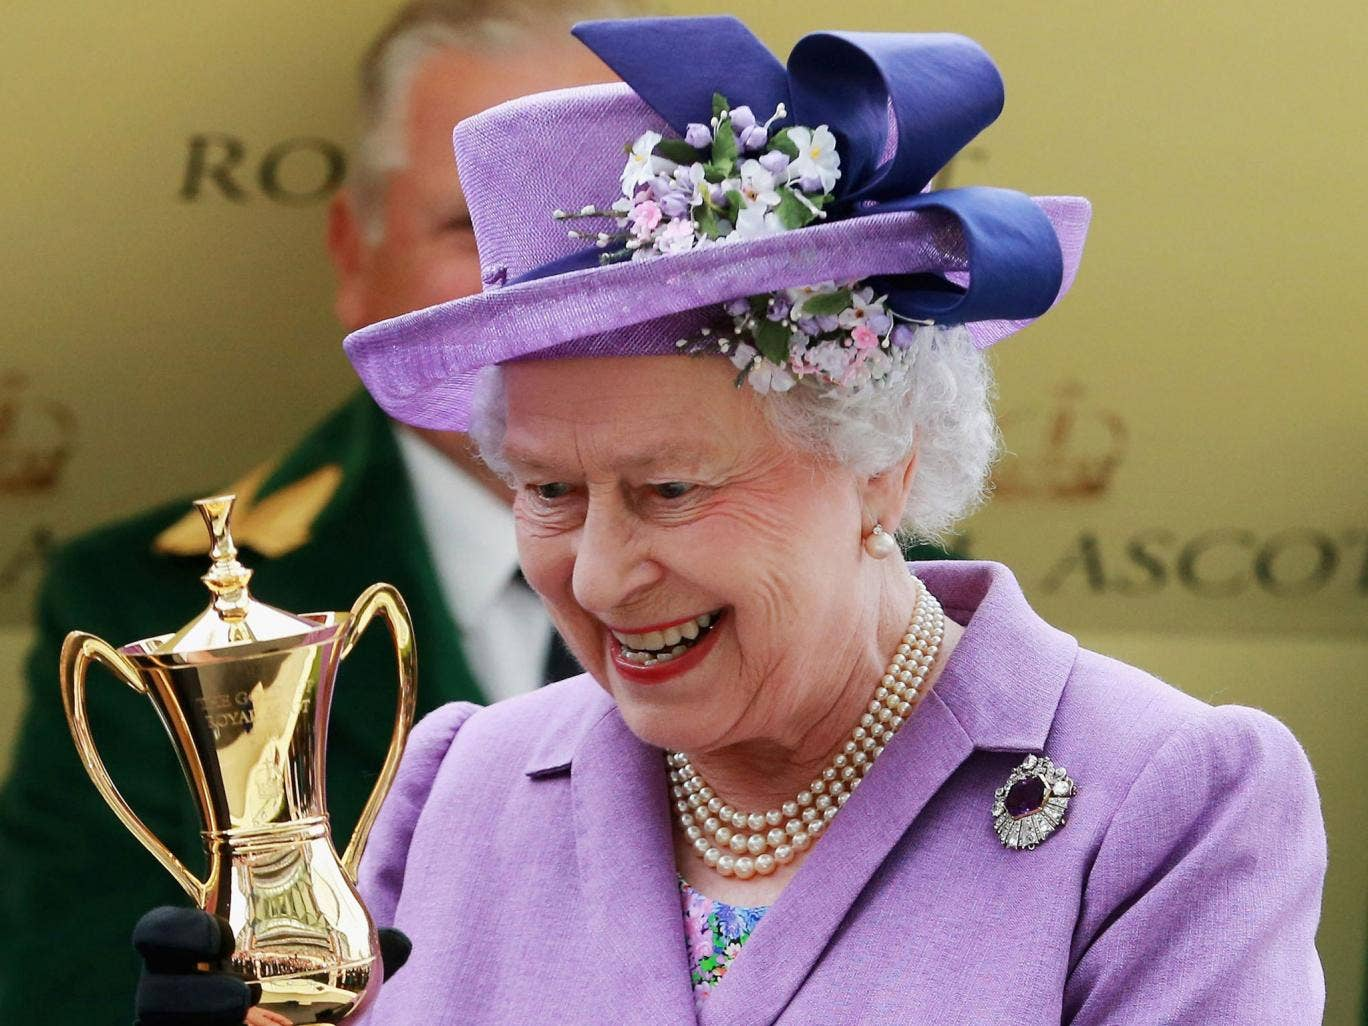 The Queen is handed the Gold Cup at Ascot yesterday after victory for her horse, Estimate